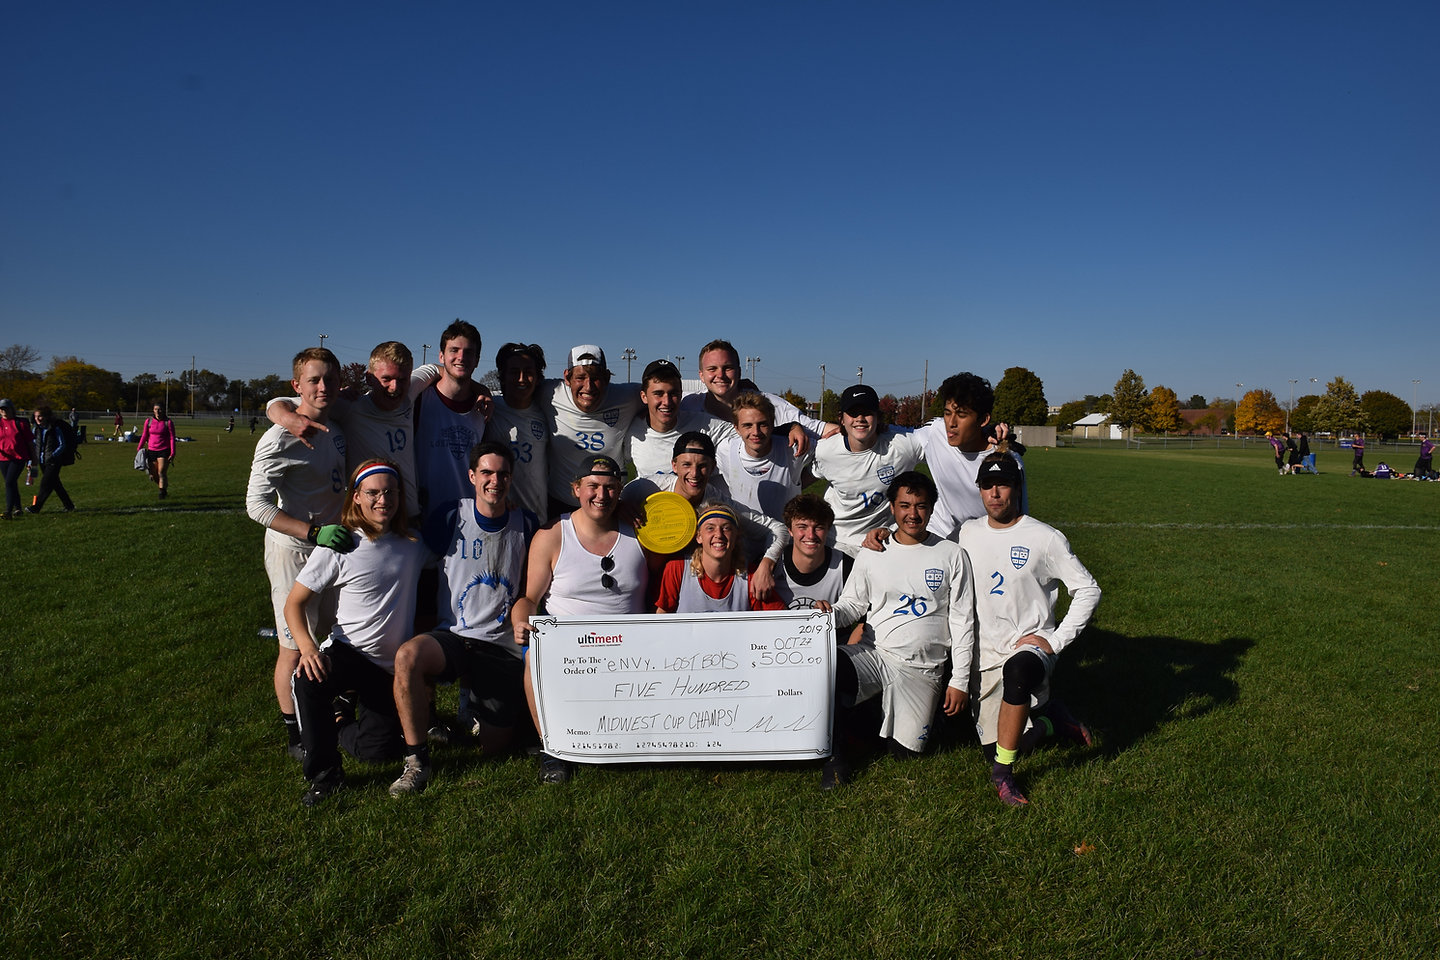 North Park Lost Boys - Midwest Cup Champ